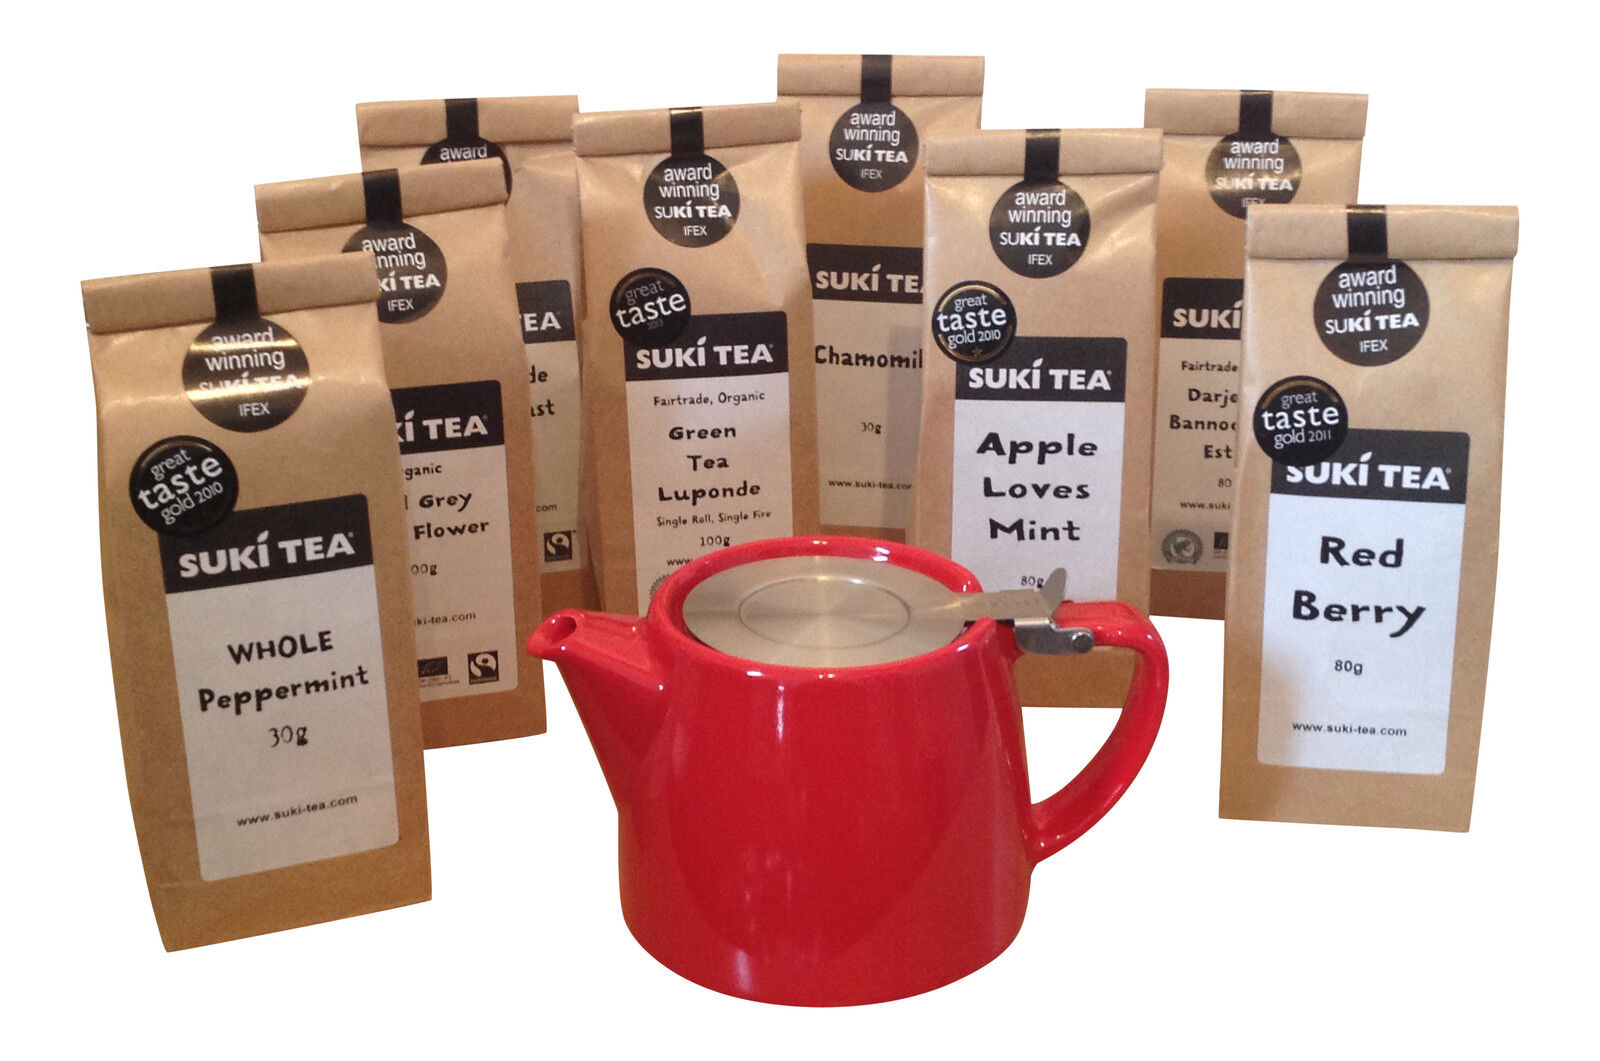 RED 18oz  FORLIFE LOOSE LEAF TEAPOT & PACK OF SUKI TEA -CHOI